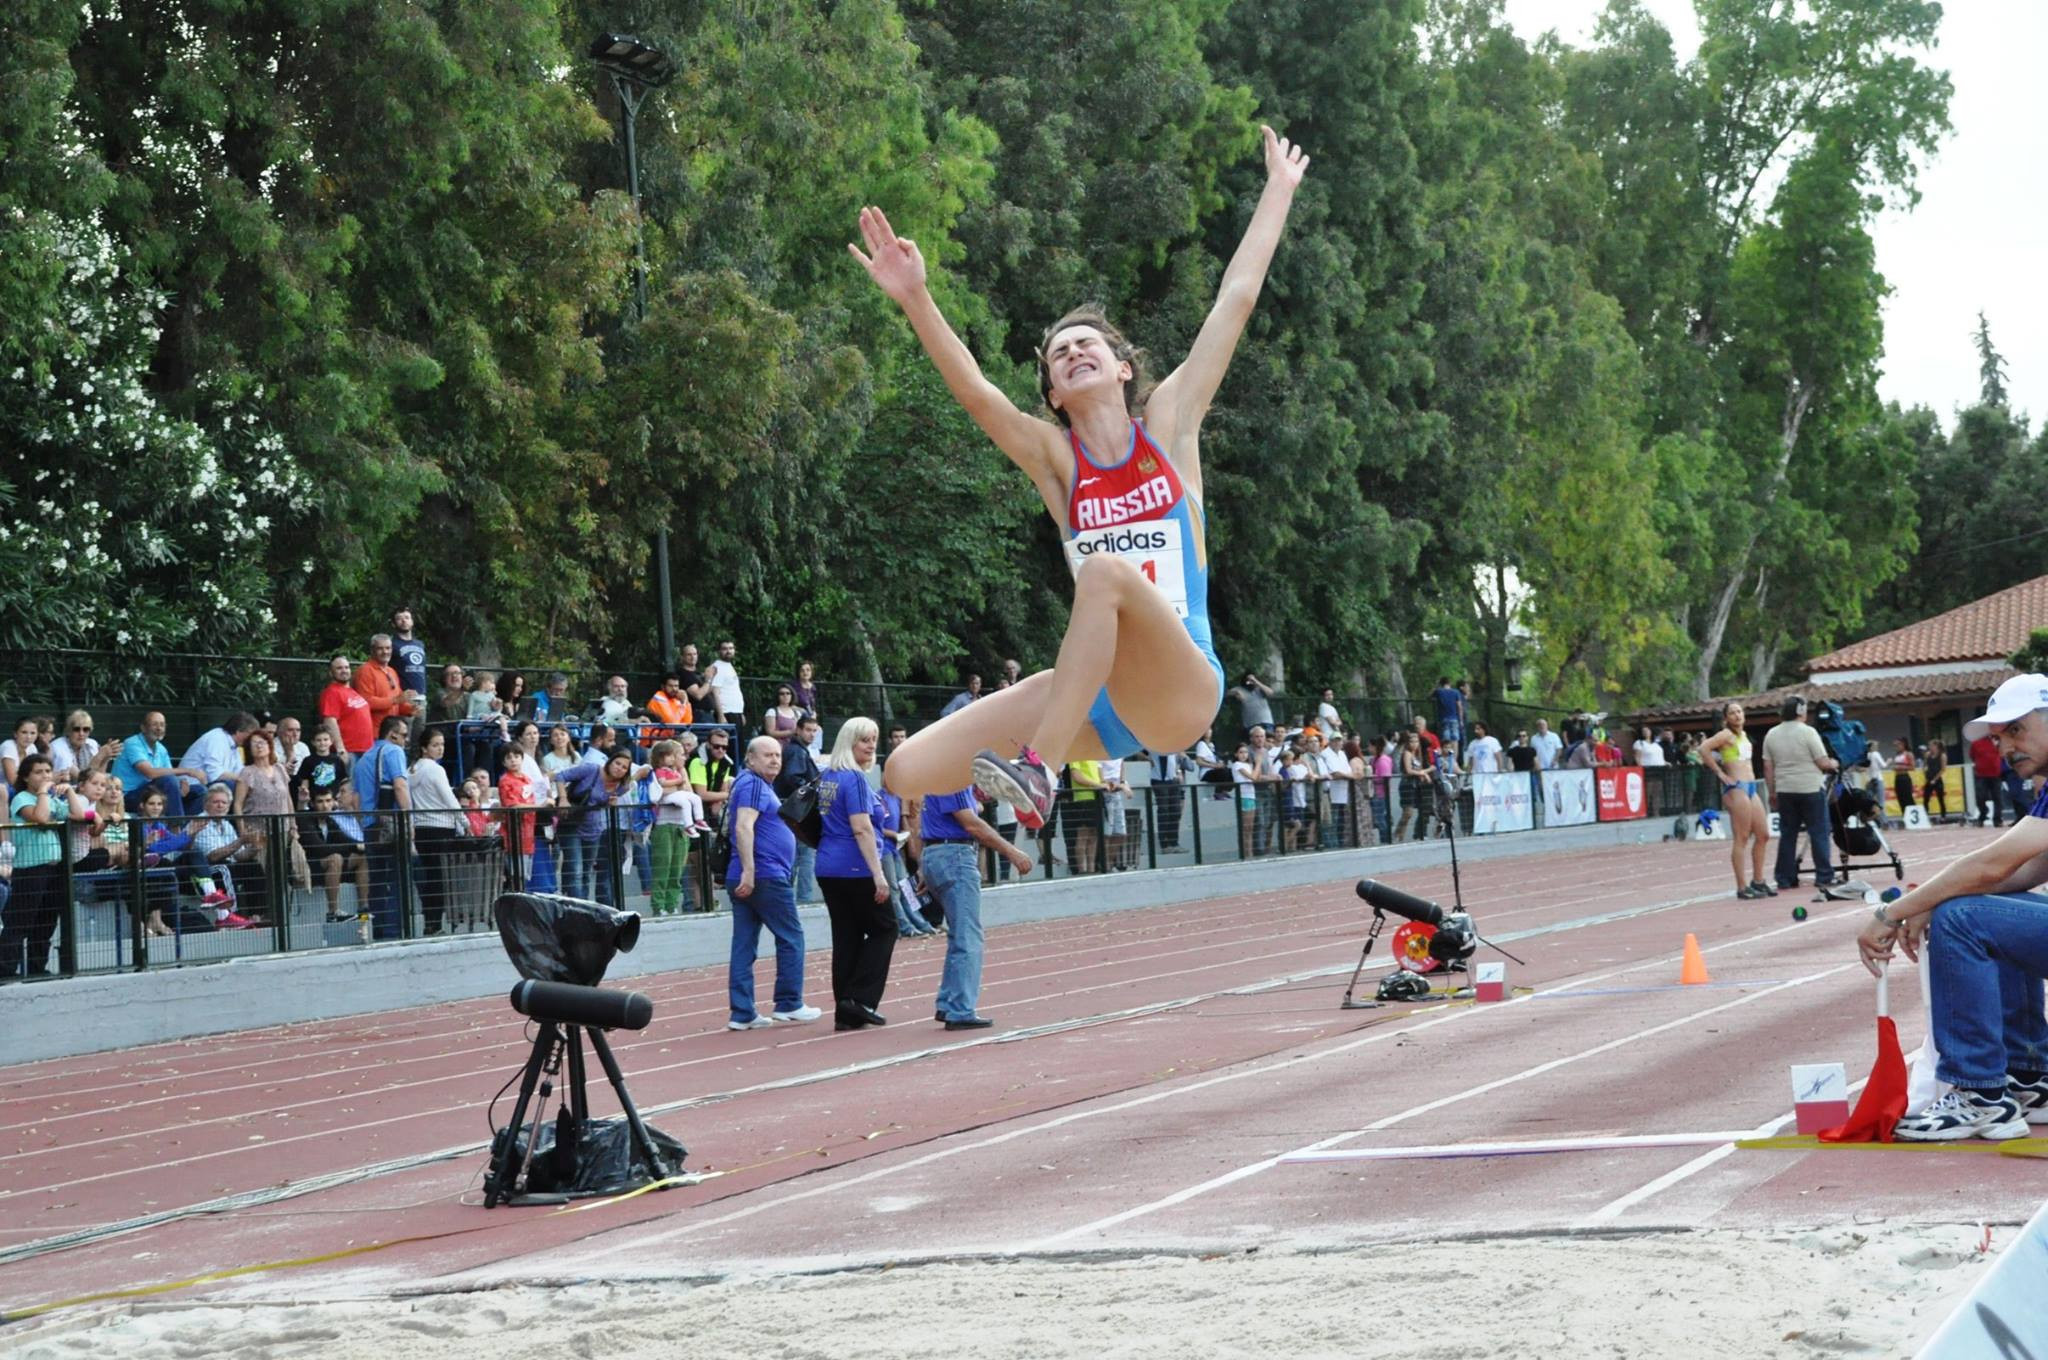 Long jumper Yelena Mashinistova has been suspended by RUSADA for a year for an anti-doping violation ©Facebook